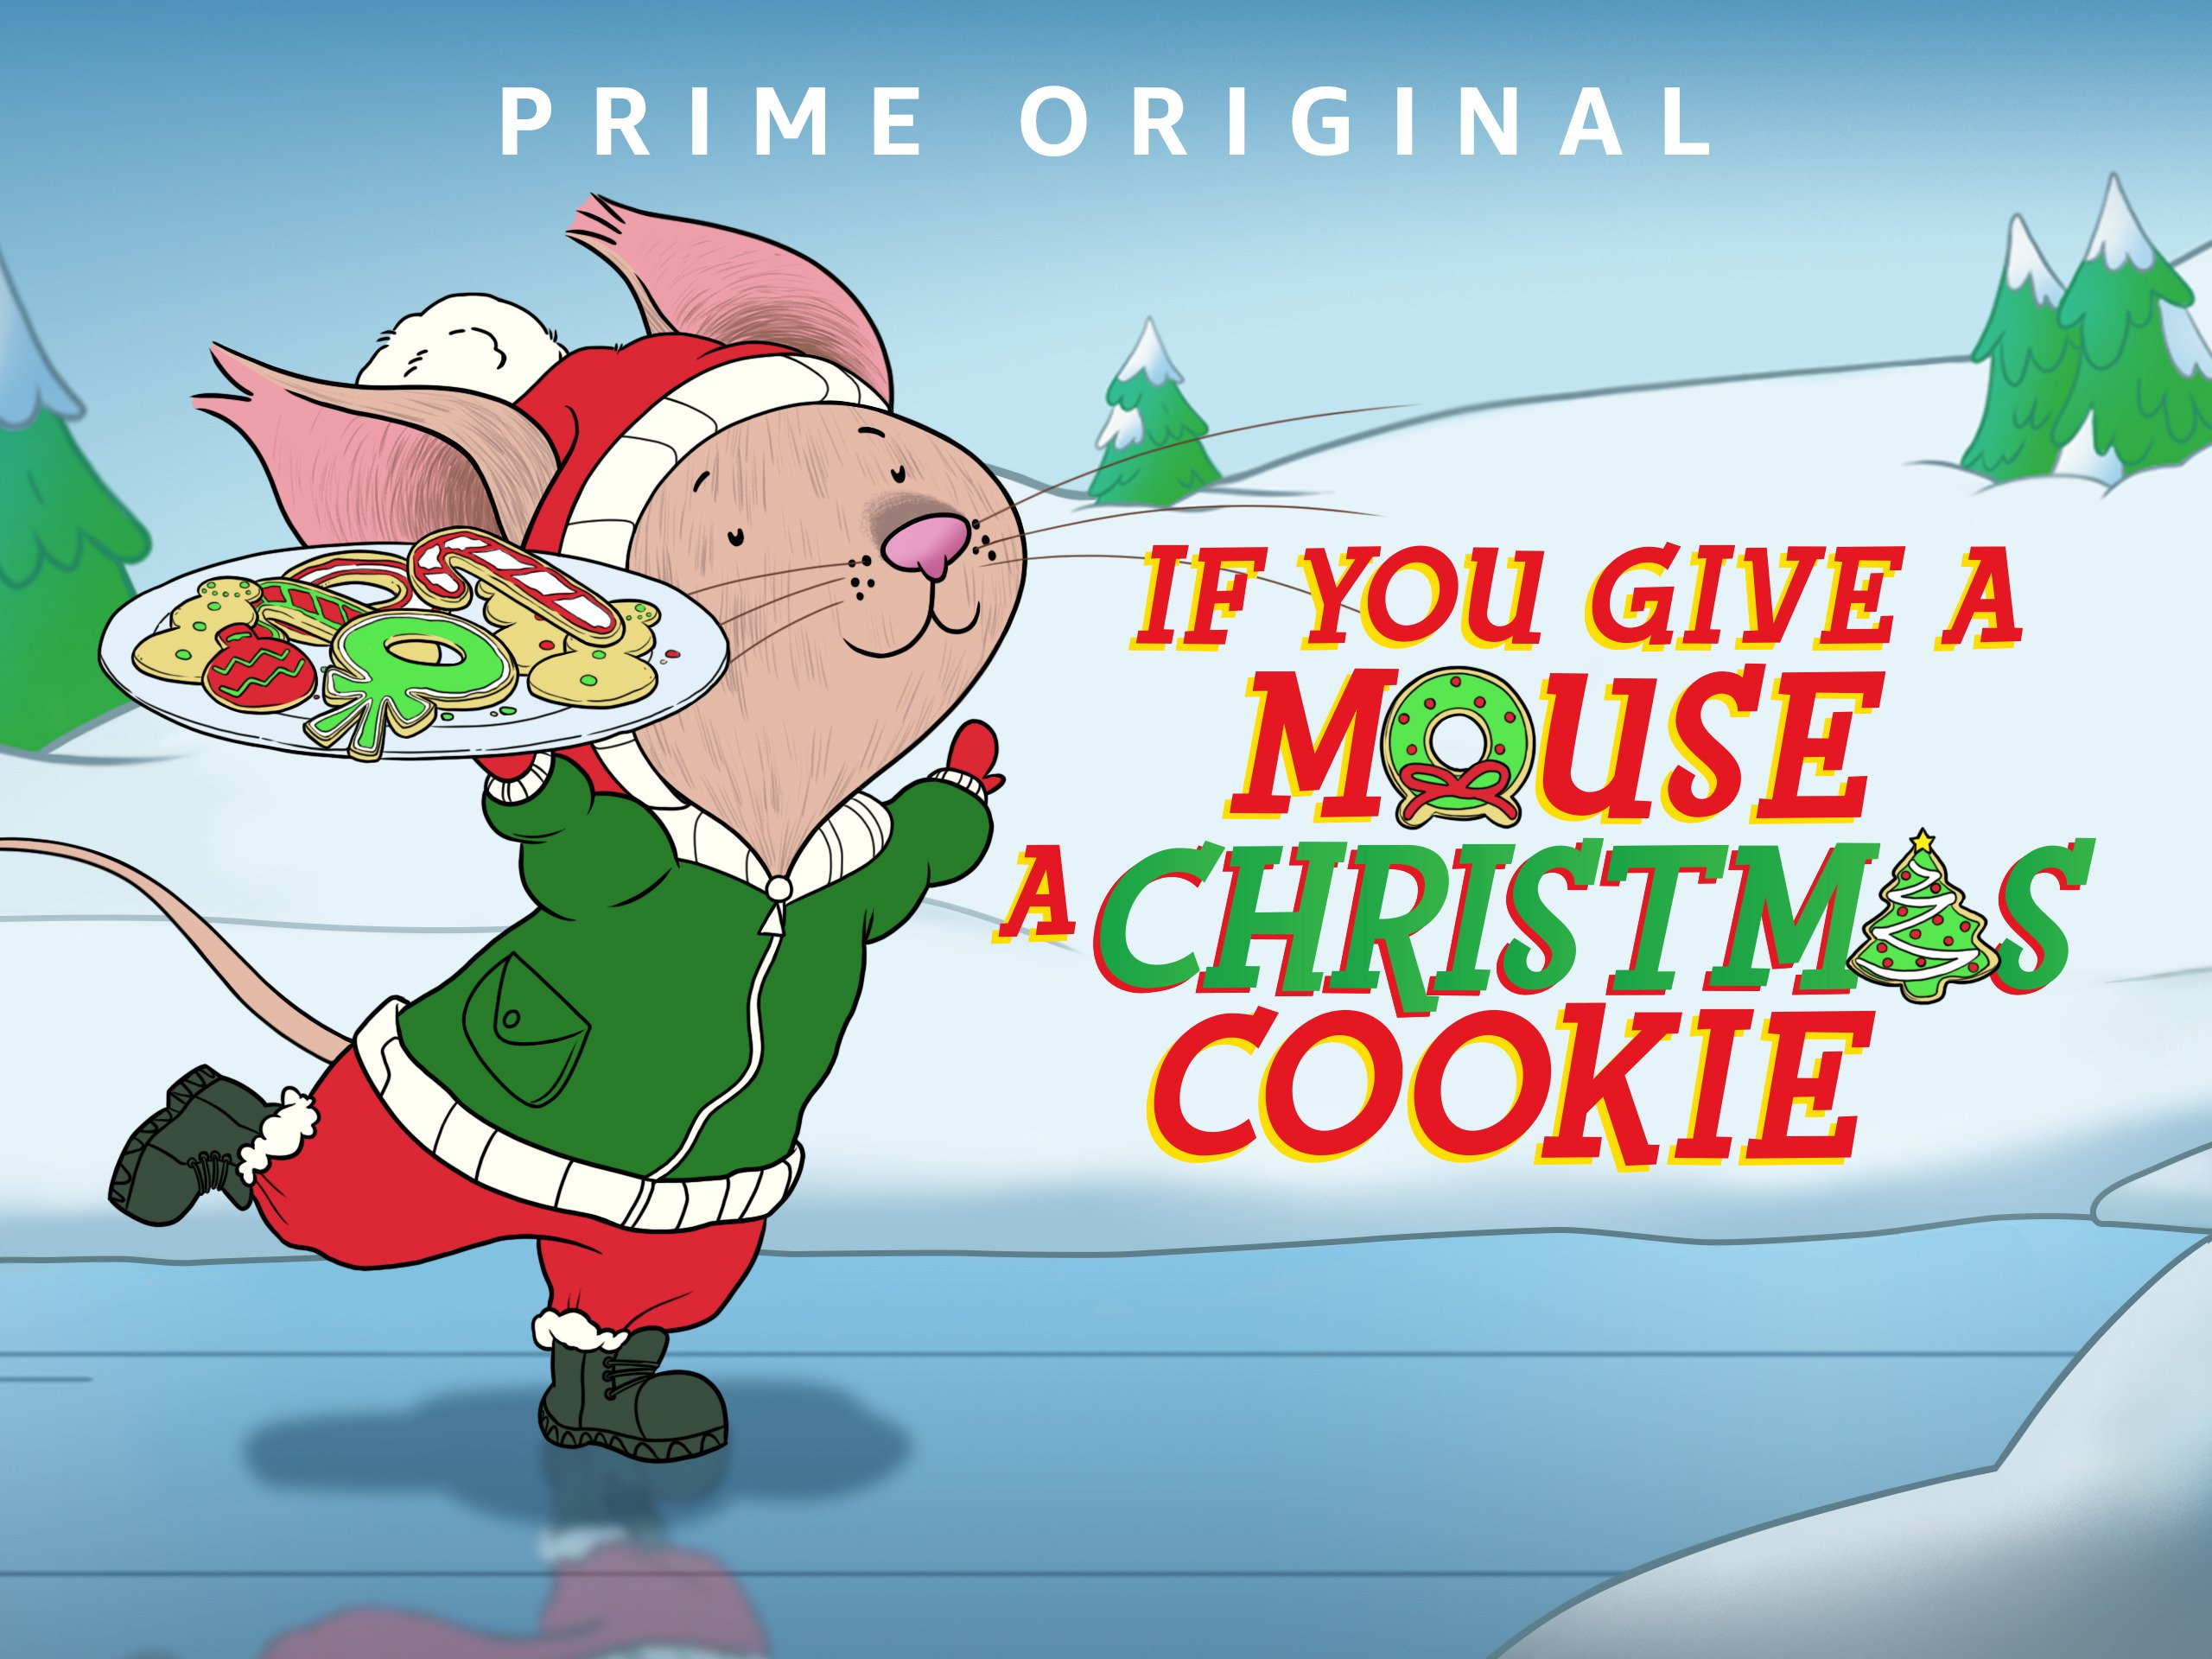 Amazon.com: If You Give A Mouse A Christmas Cookie: Mason Mahay ...